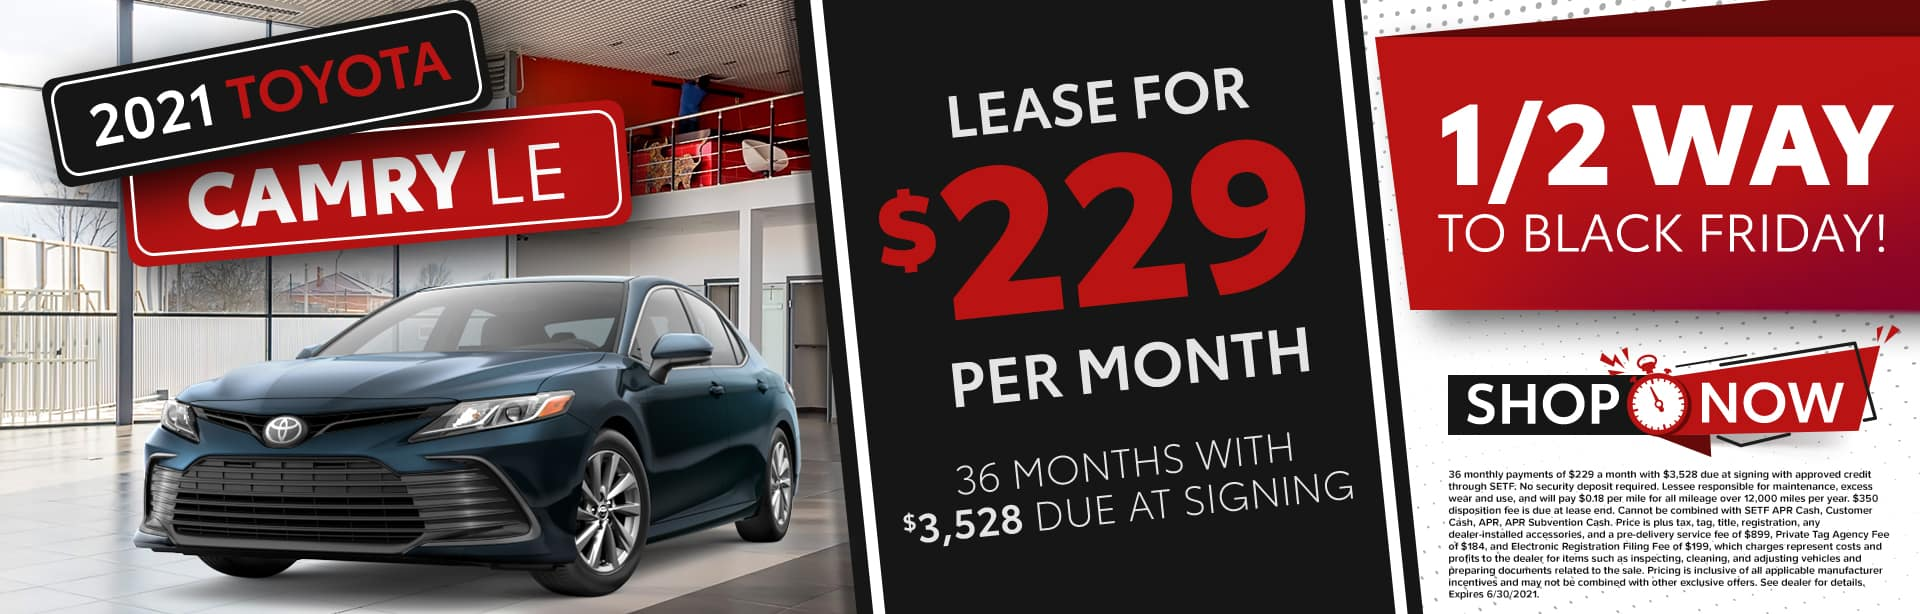 1/2 Way To Black Friday   2021 Toyota Camry LE   Lease For $229 Per Month For 36 Months With $3,528 Due At Signing